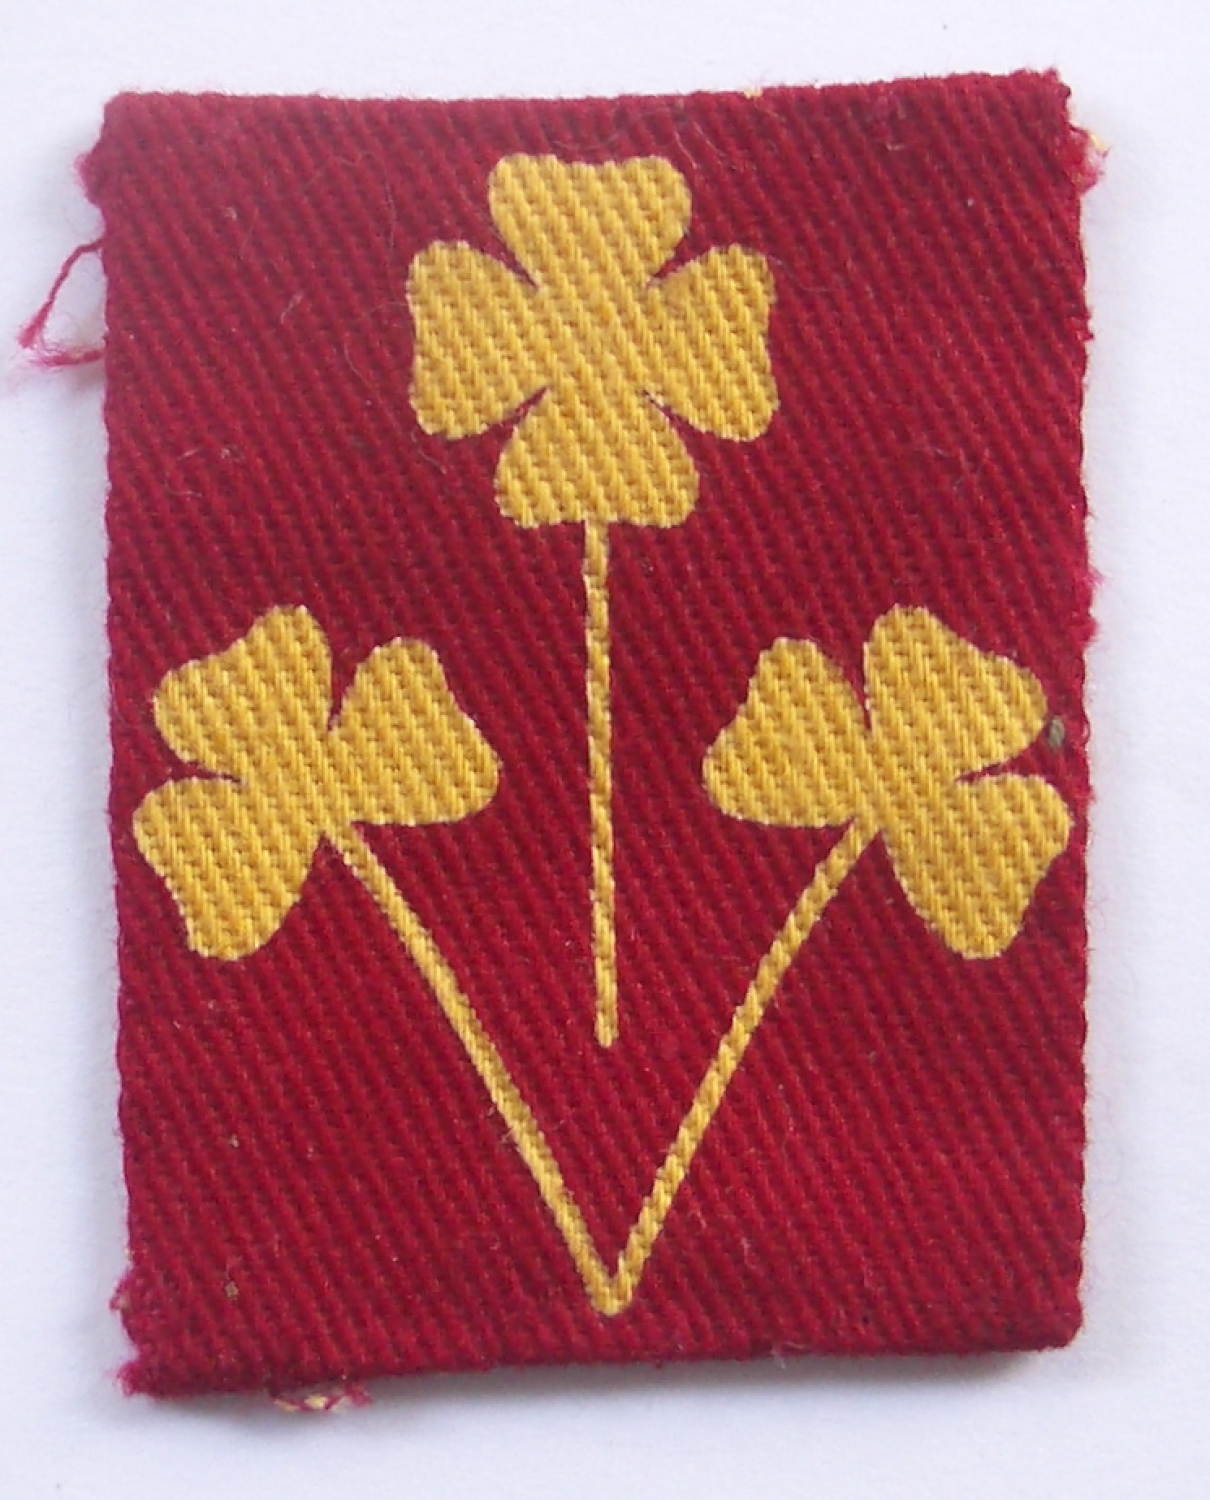 8th Indian Division WW2 formation sign